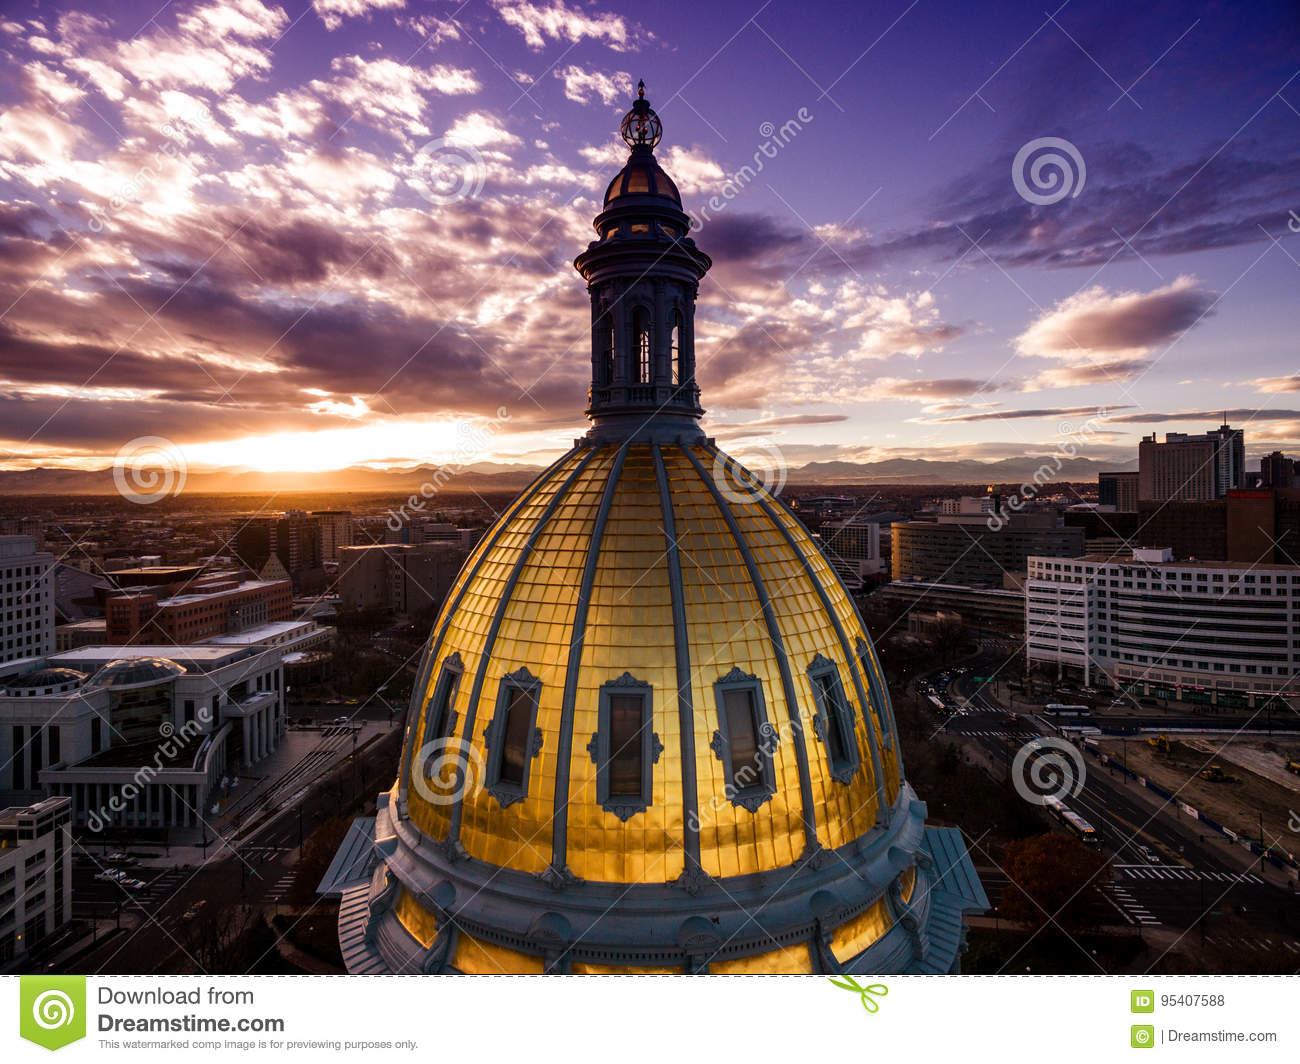 Aerial Drone Photograph - Stunning golden sunset over the Colorado state capital building & Rocky Mountains, Denver Colorado.